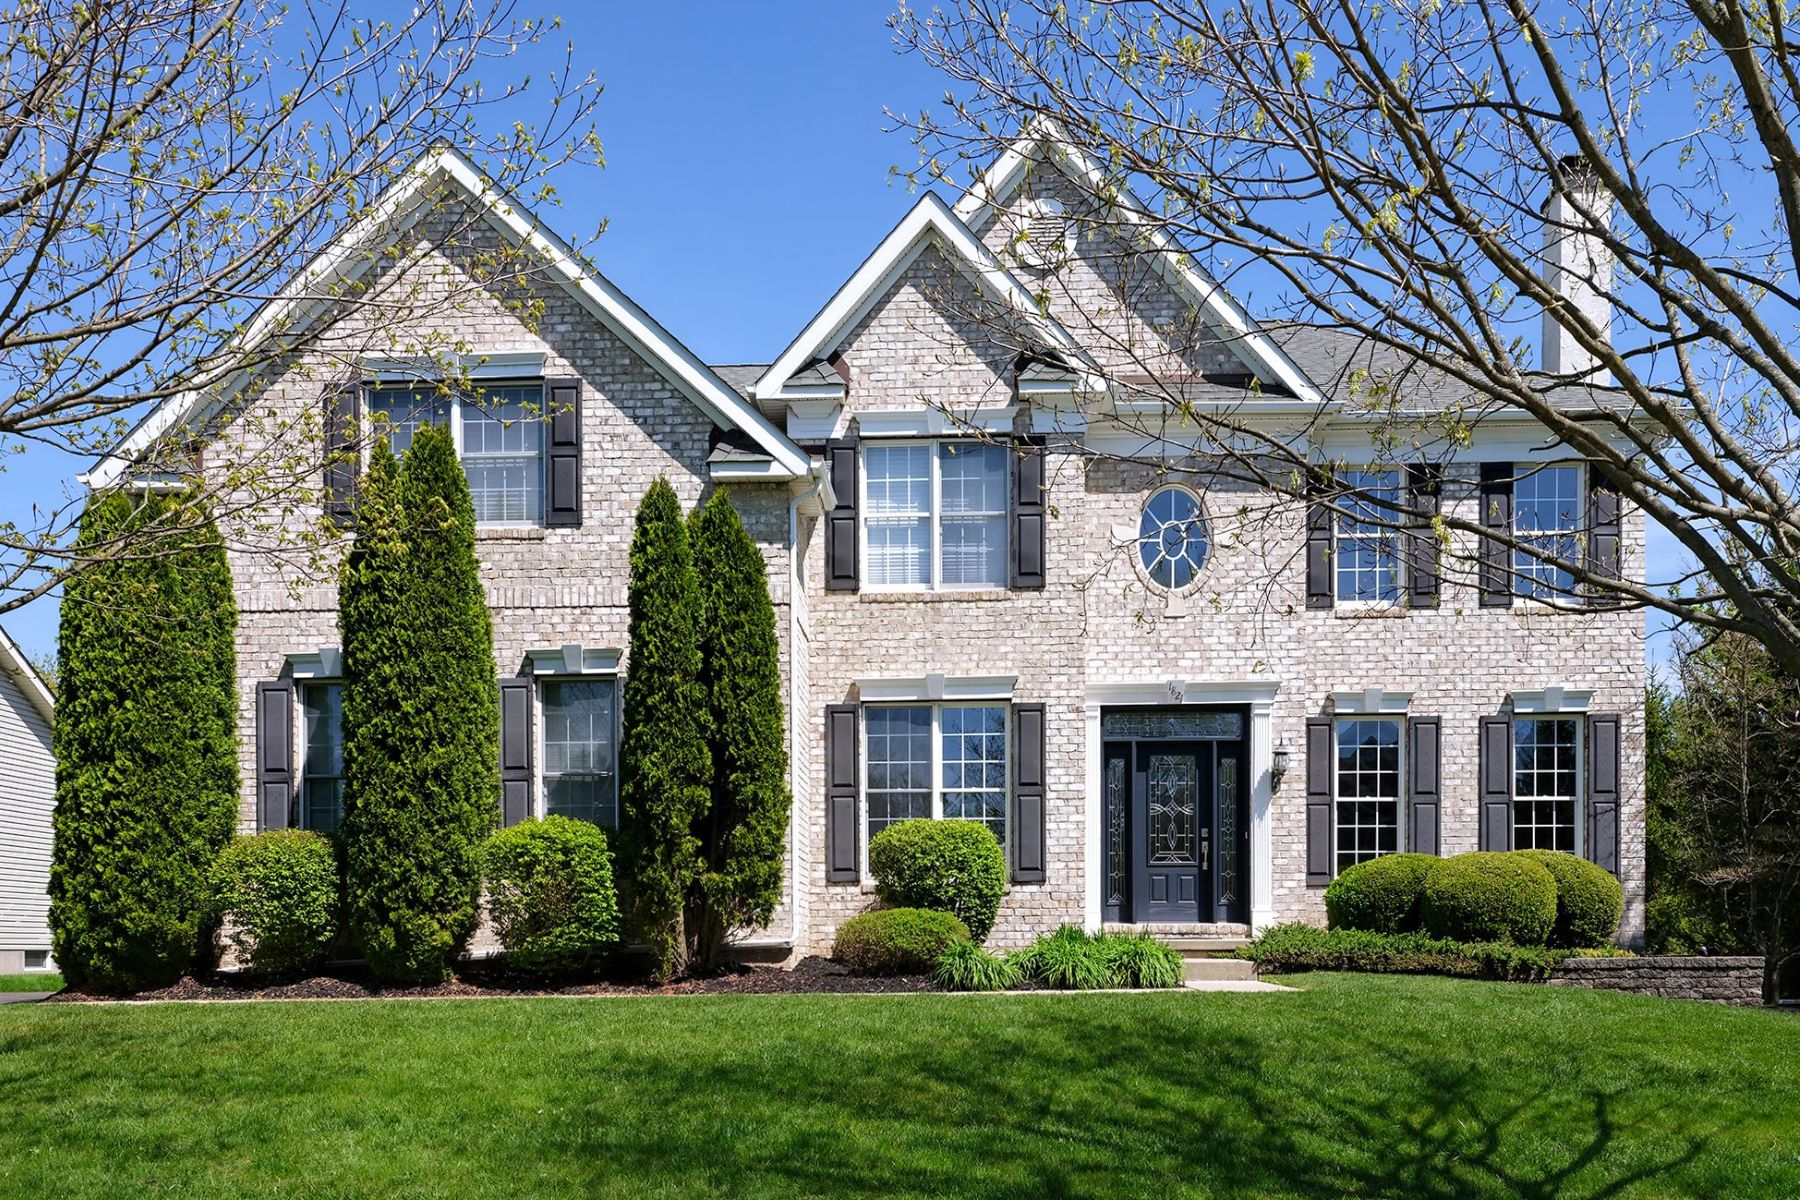 Single Family Homes for Sale at Immaculately Presented Country Club Home With A Prized 17th Hole View 1821 Augusta Drive, Jamison, Pennsylvania 18929 United States